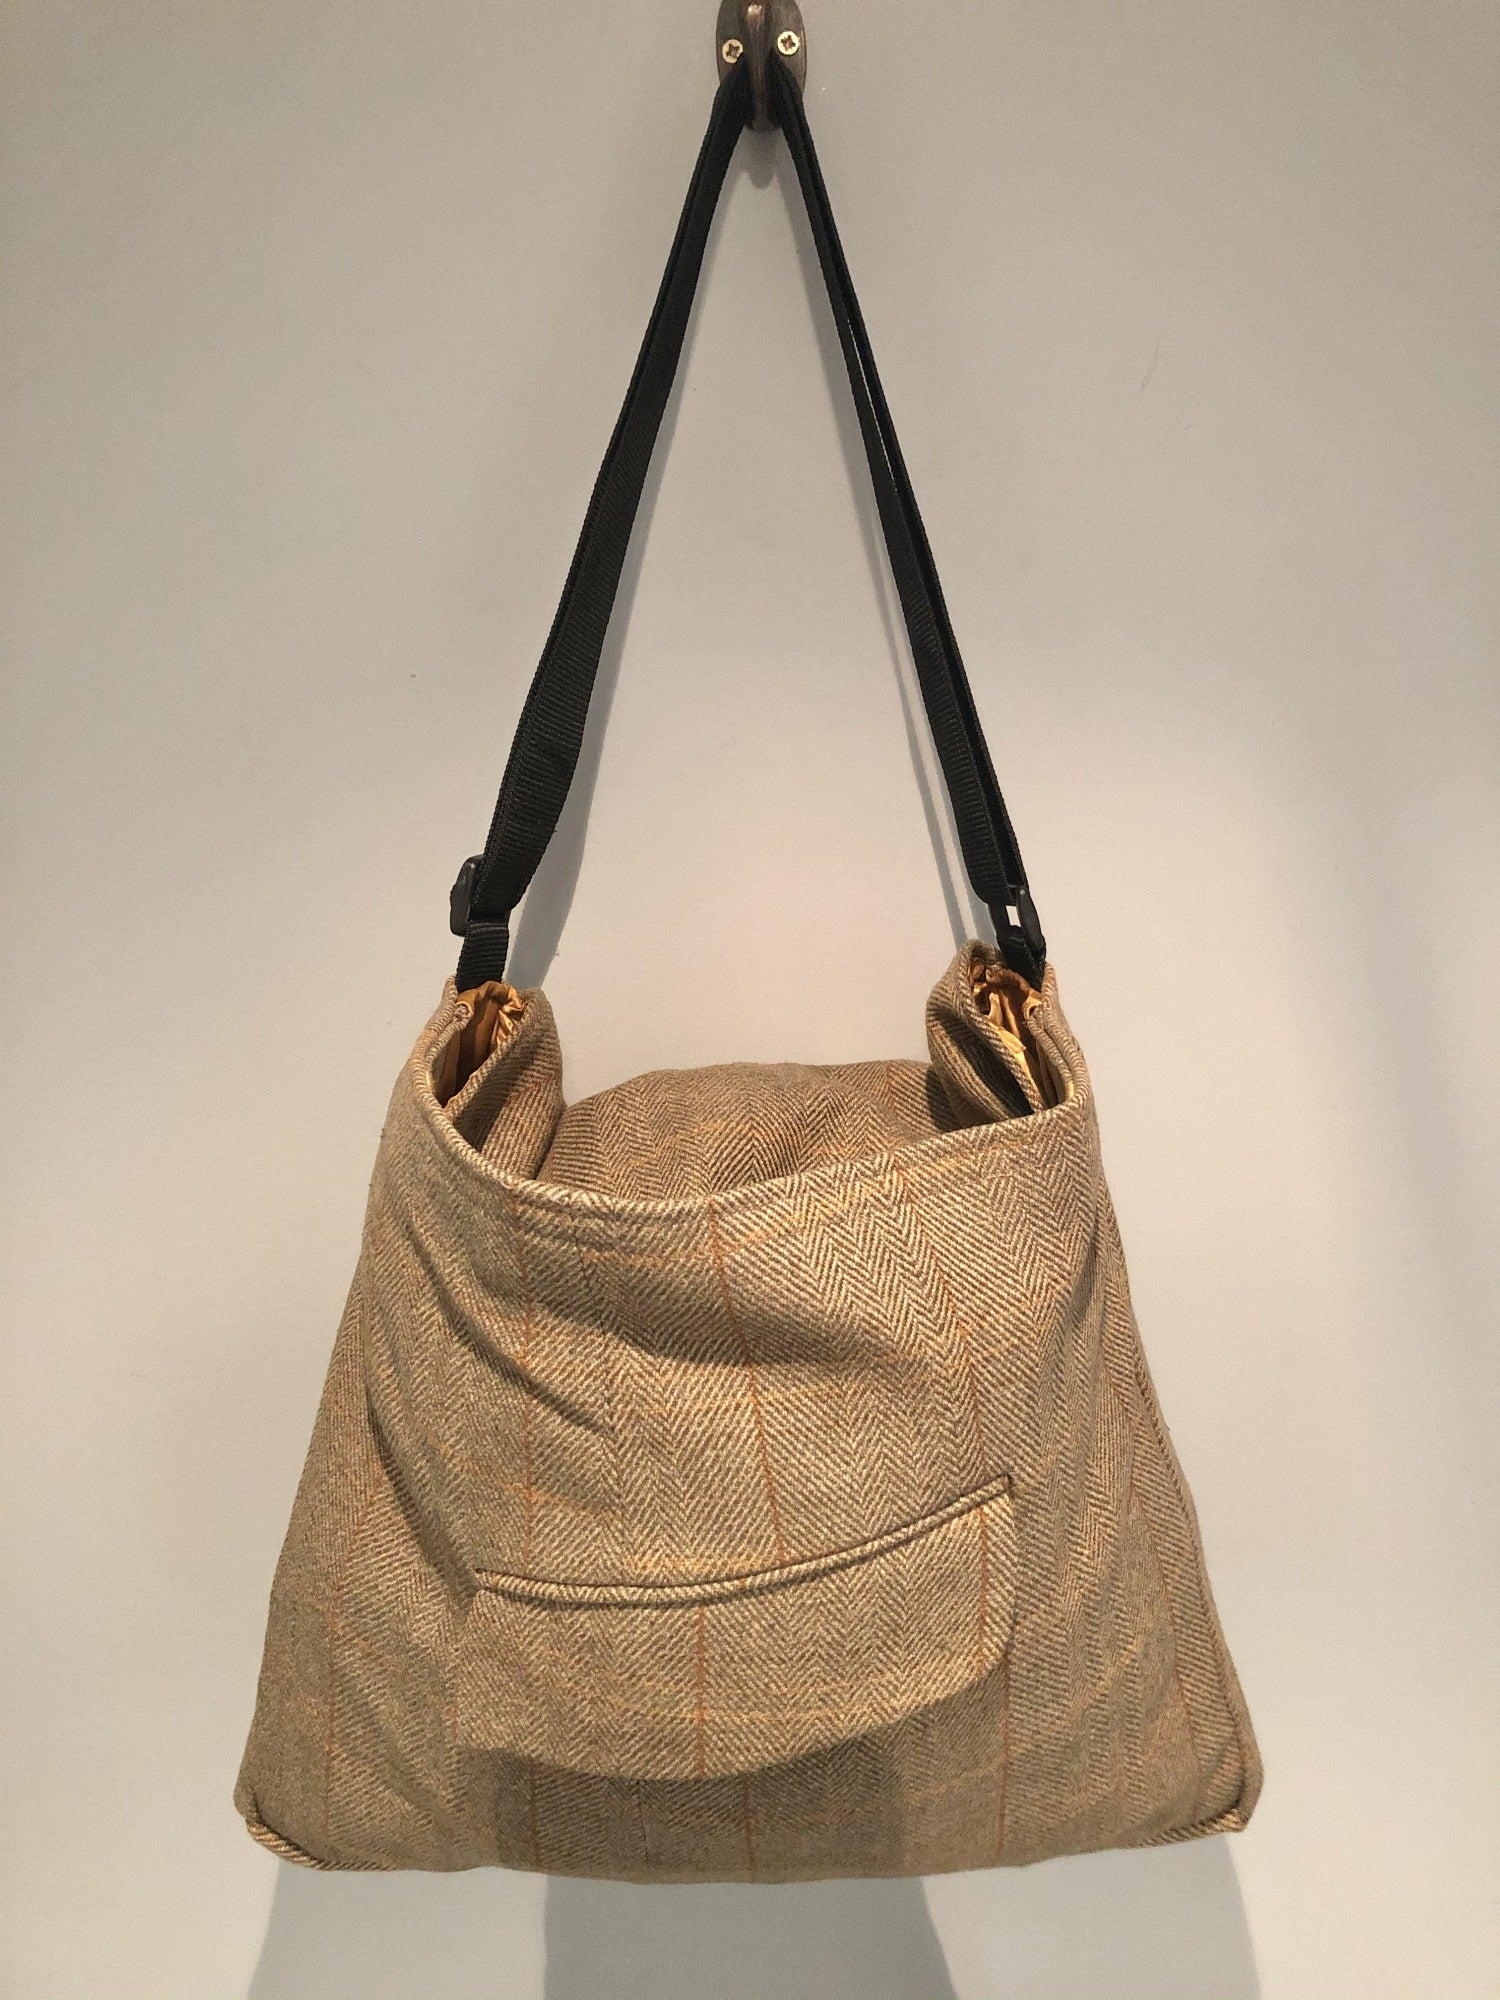 One Off Handmade Bag Made From Original Vintage Tweed Tailored by Boyd of England Jacket - Brown - Urban Village Vintage